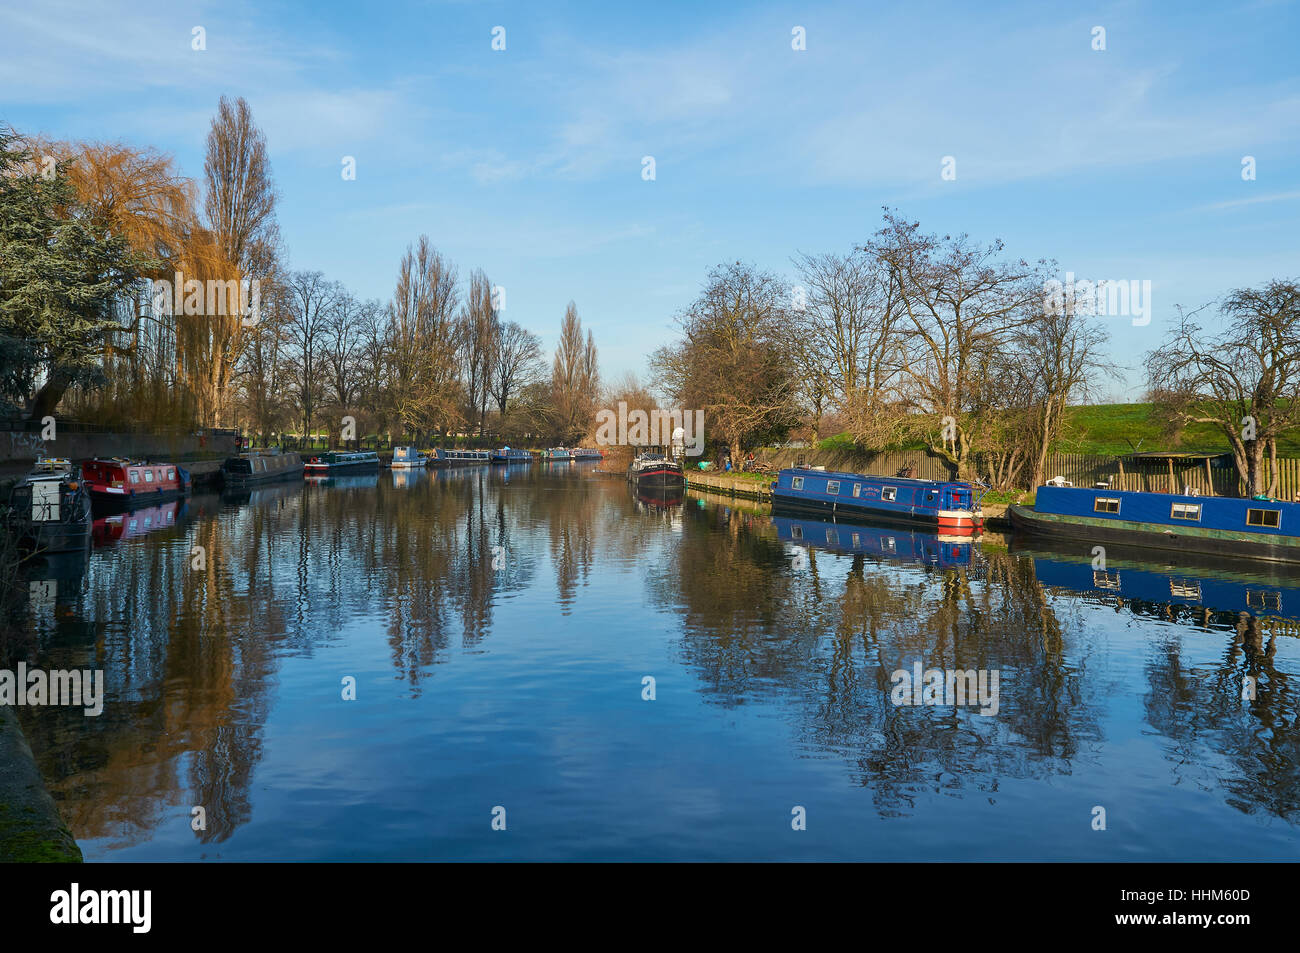 The River Lee in January, near South Tottenham, North  London UK. - Stock Image